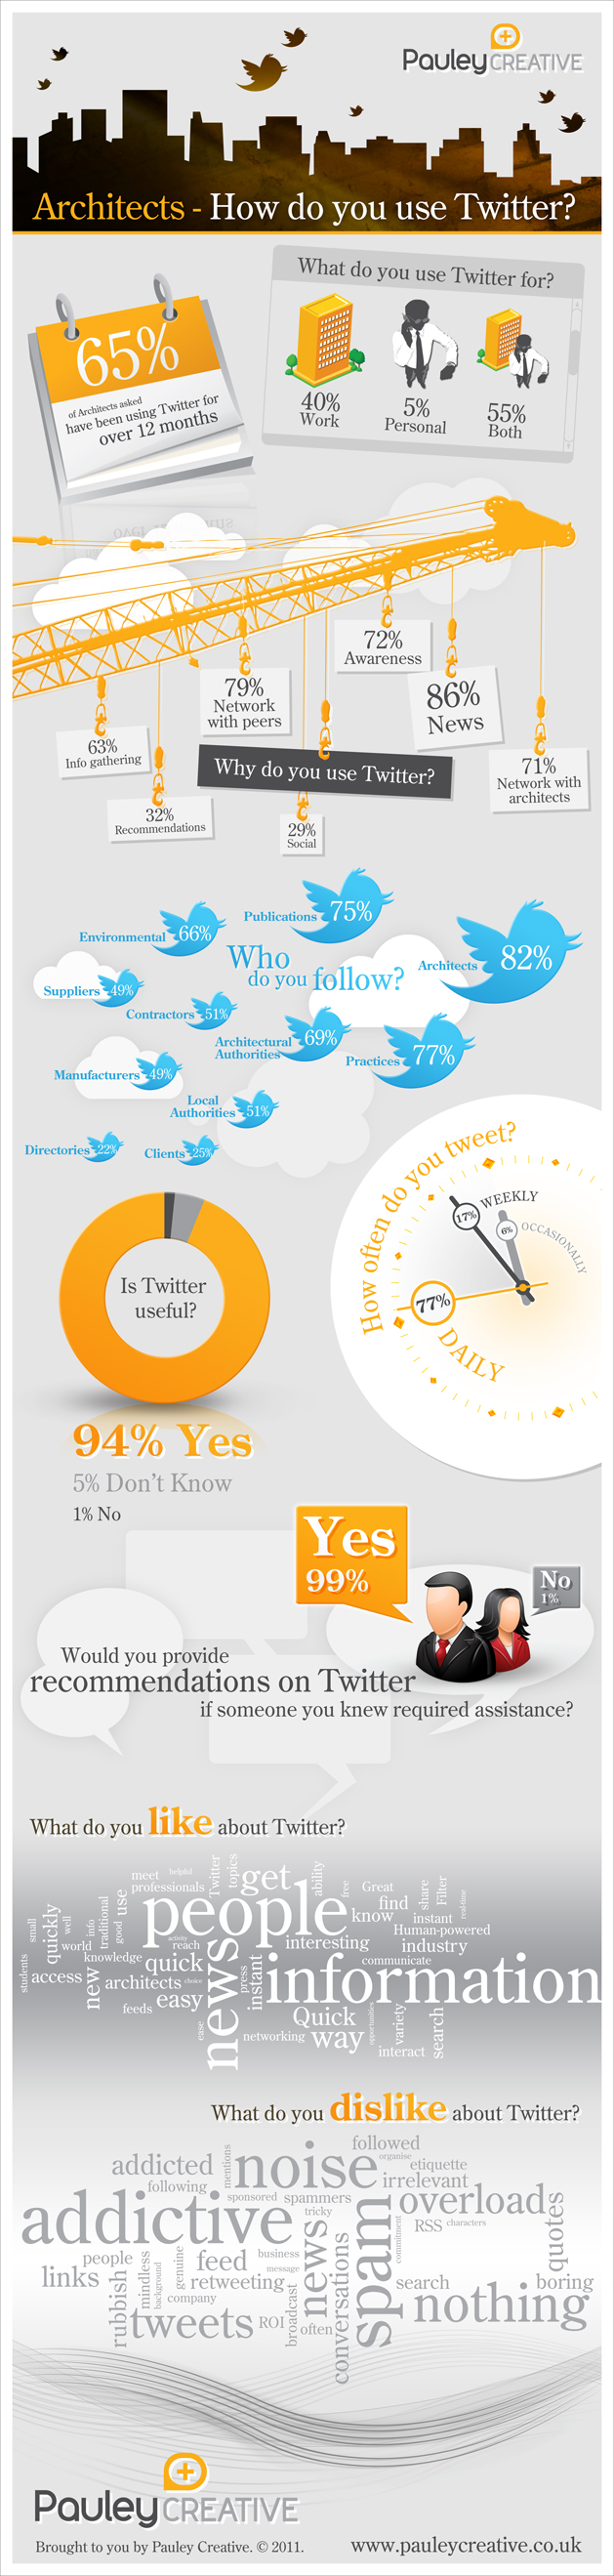 how do architects use Twitter infographic